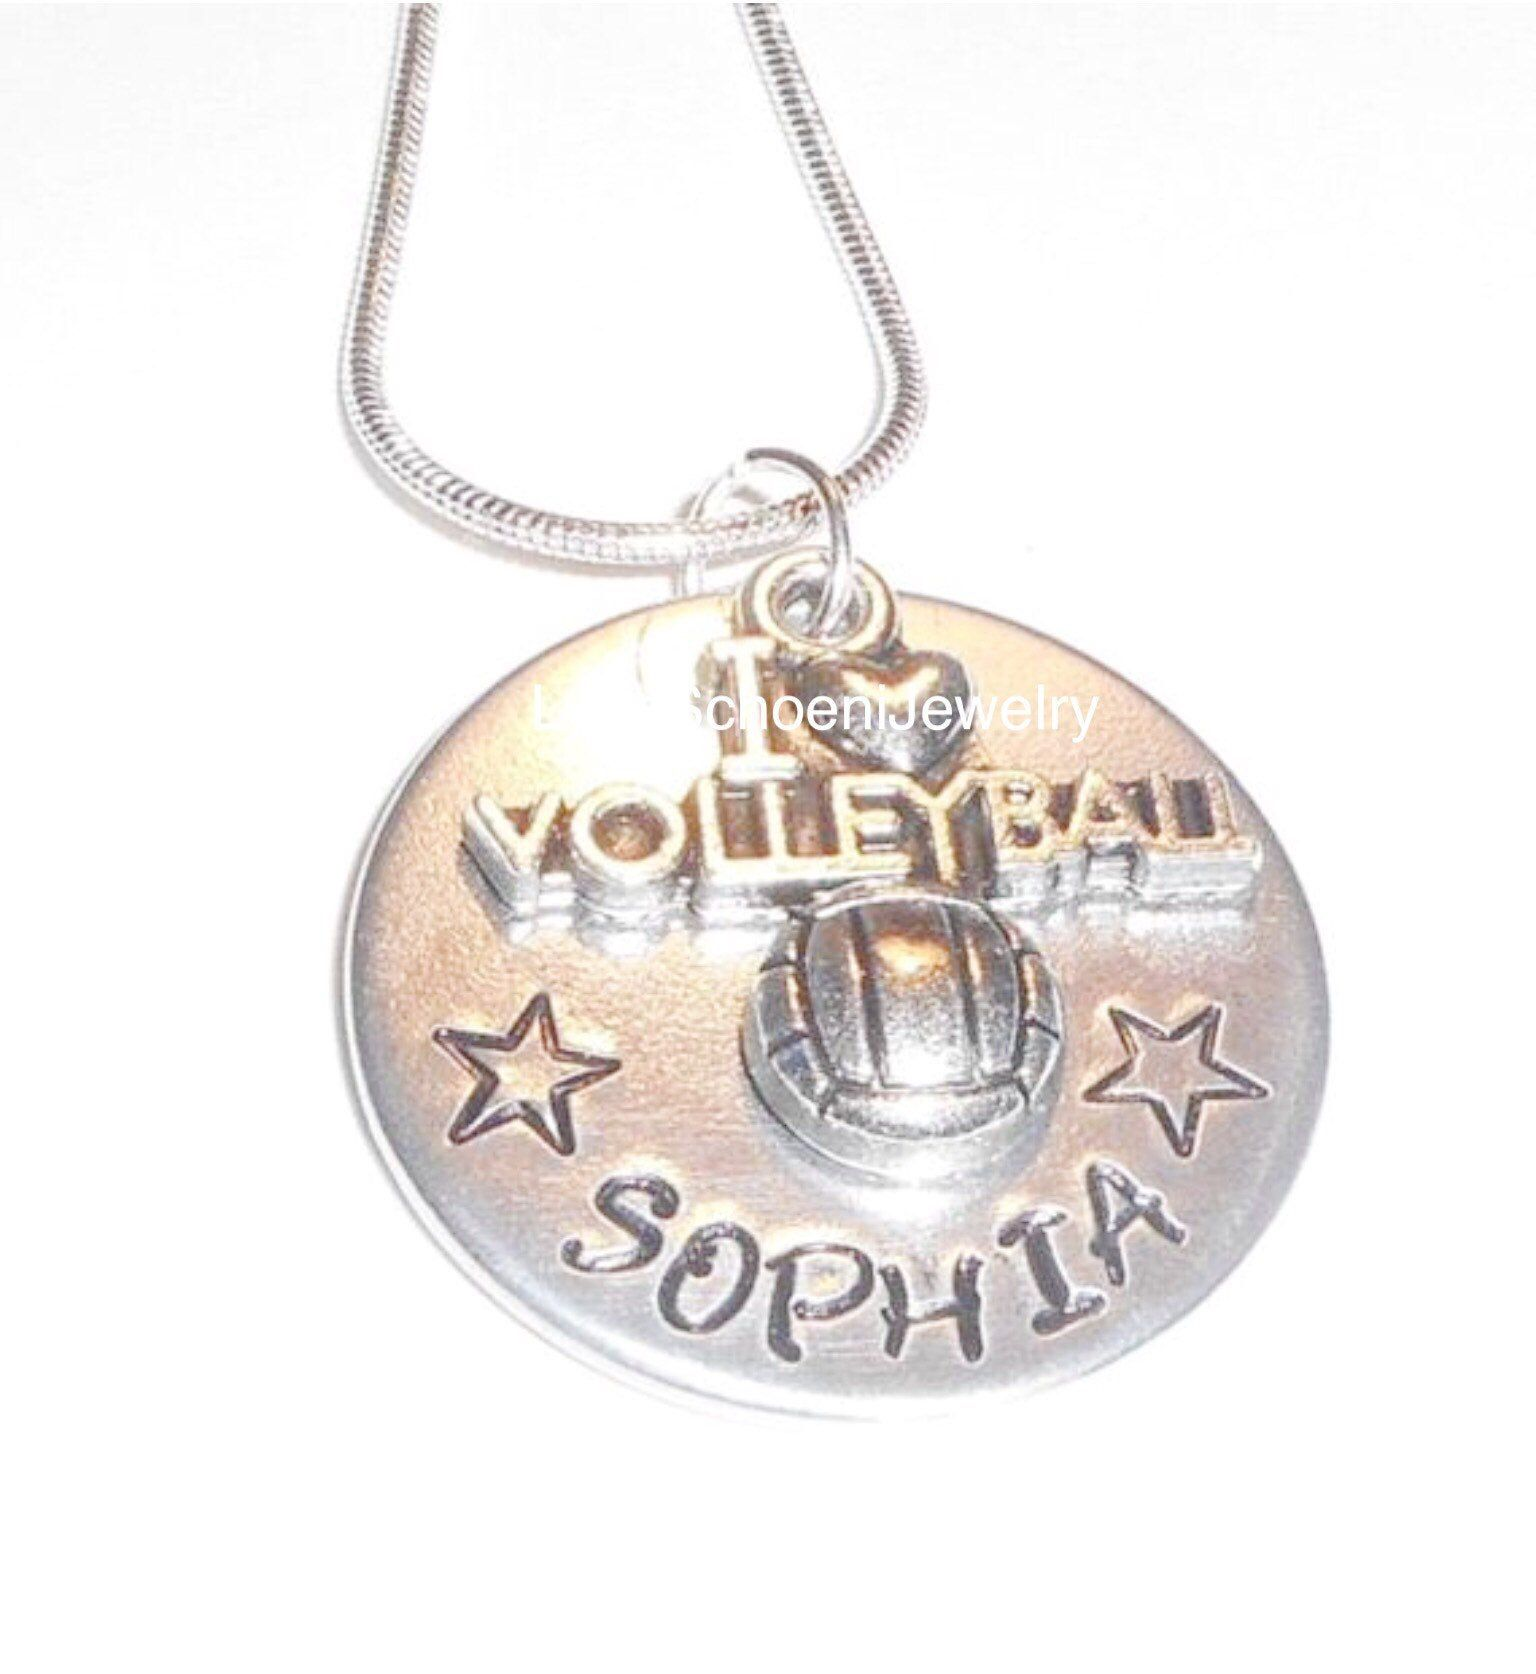 Custom Volleyball Necklace Volleyball Charm I Love Etsy Hand Stamped Jewelry Necklace Hand Stamped Jewelry Personalized Jewelry